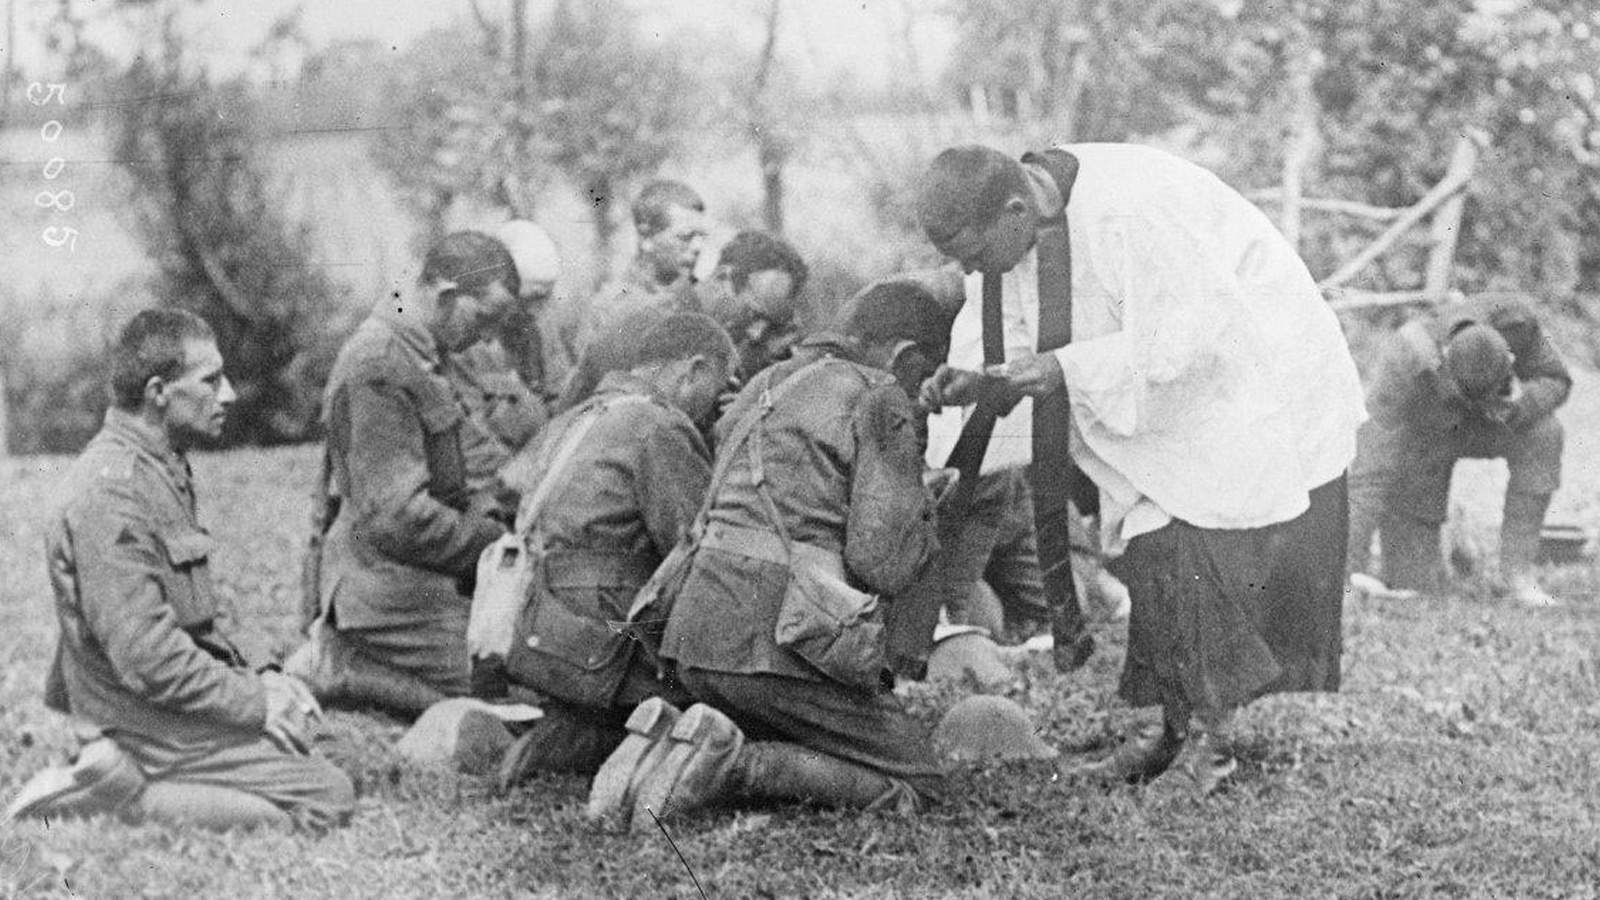 American Indian Religions in 1917